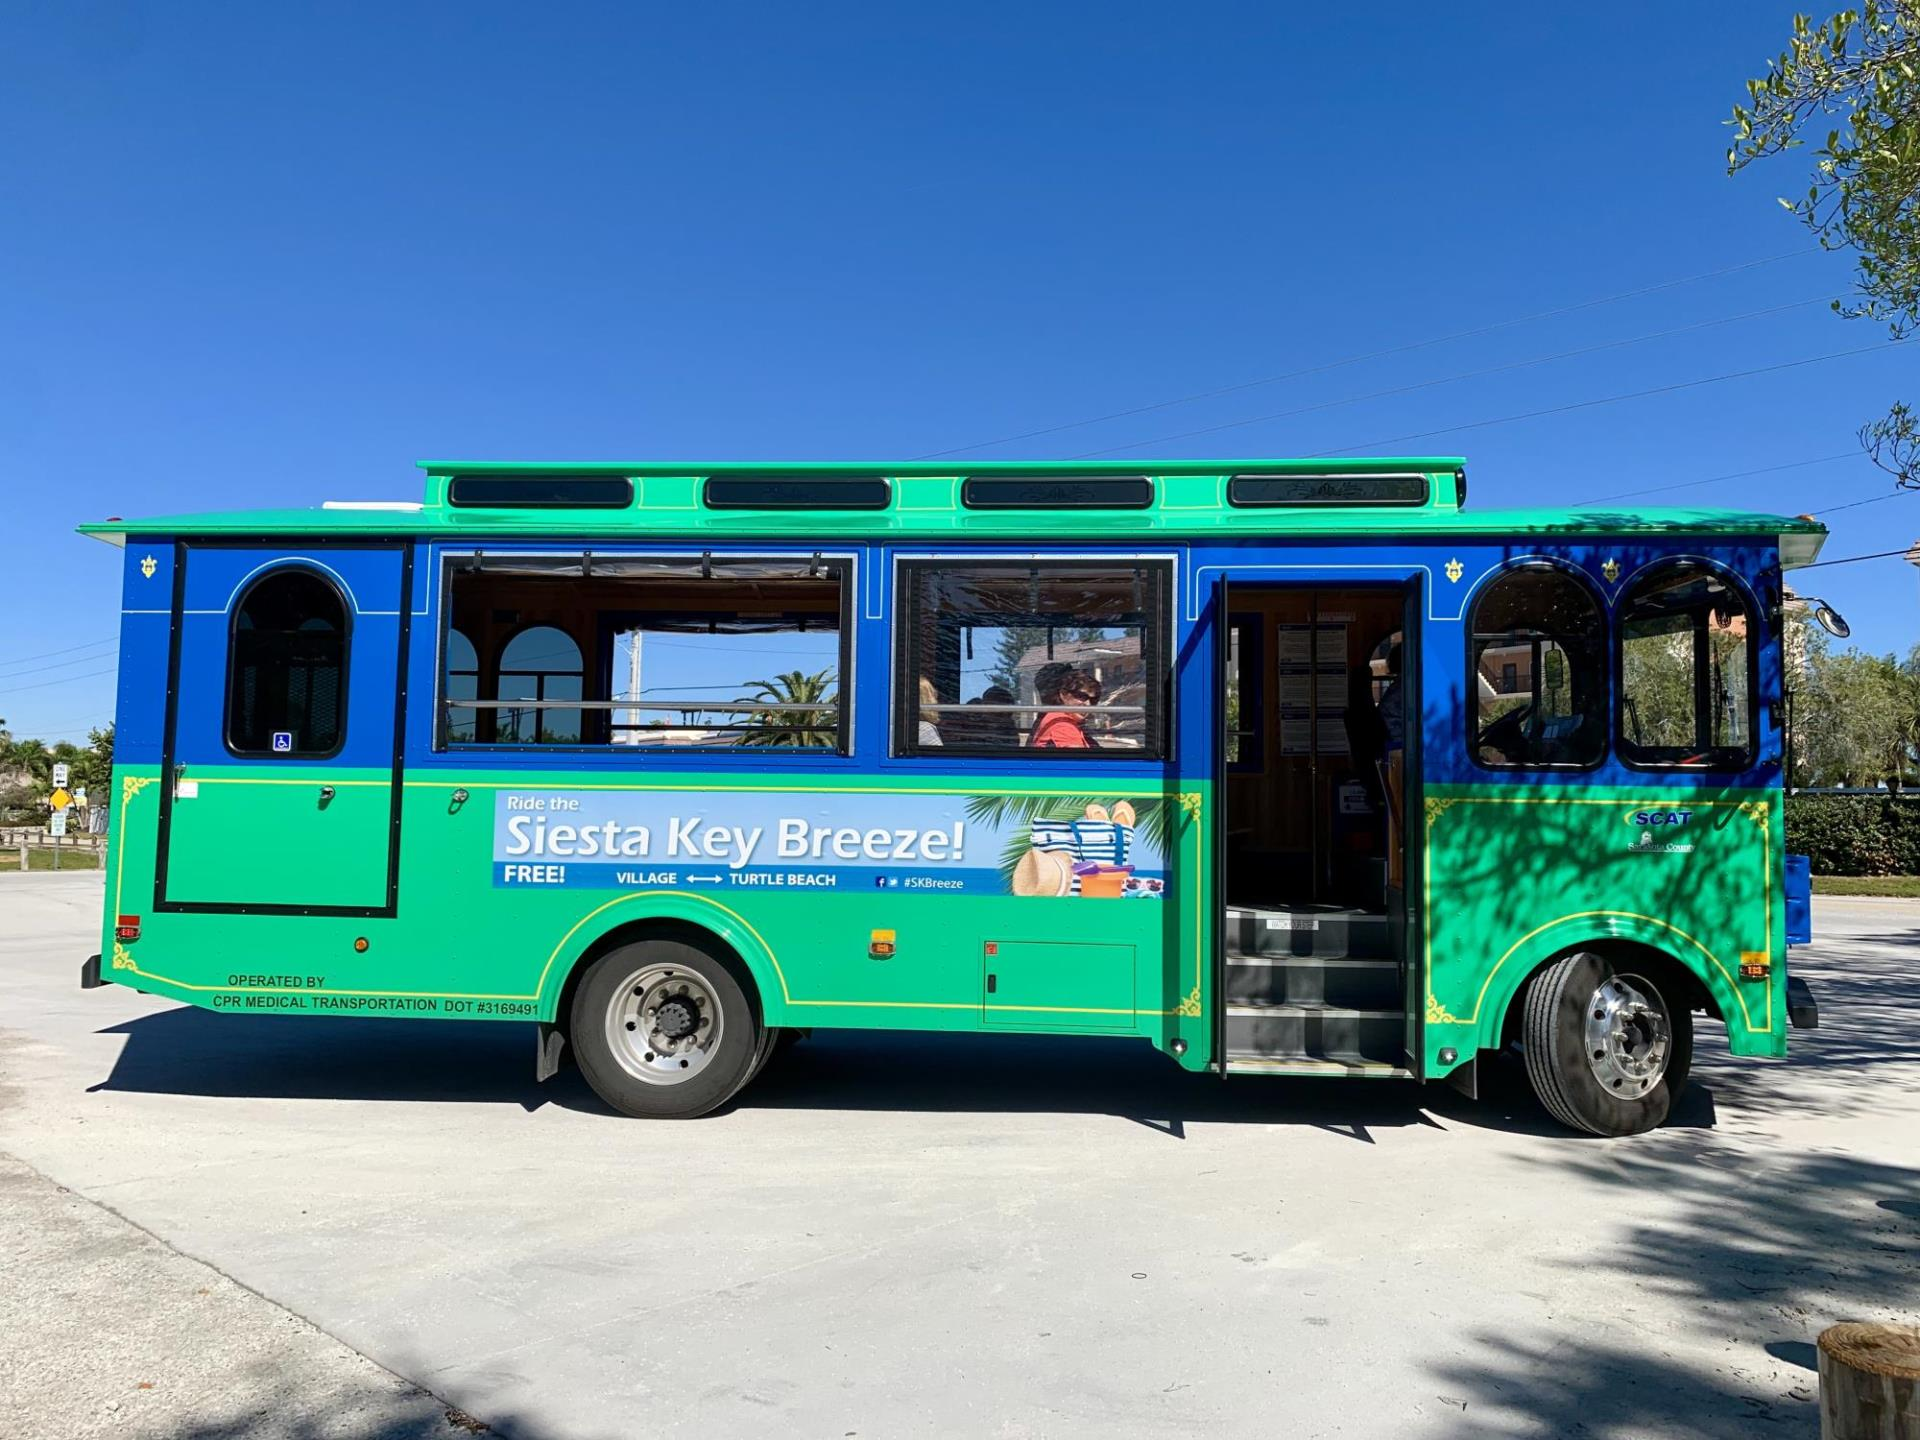 Siesta Key Breeze Trolley